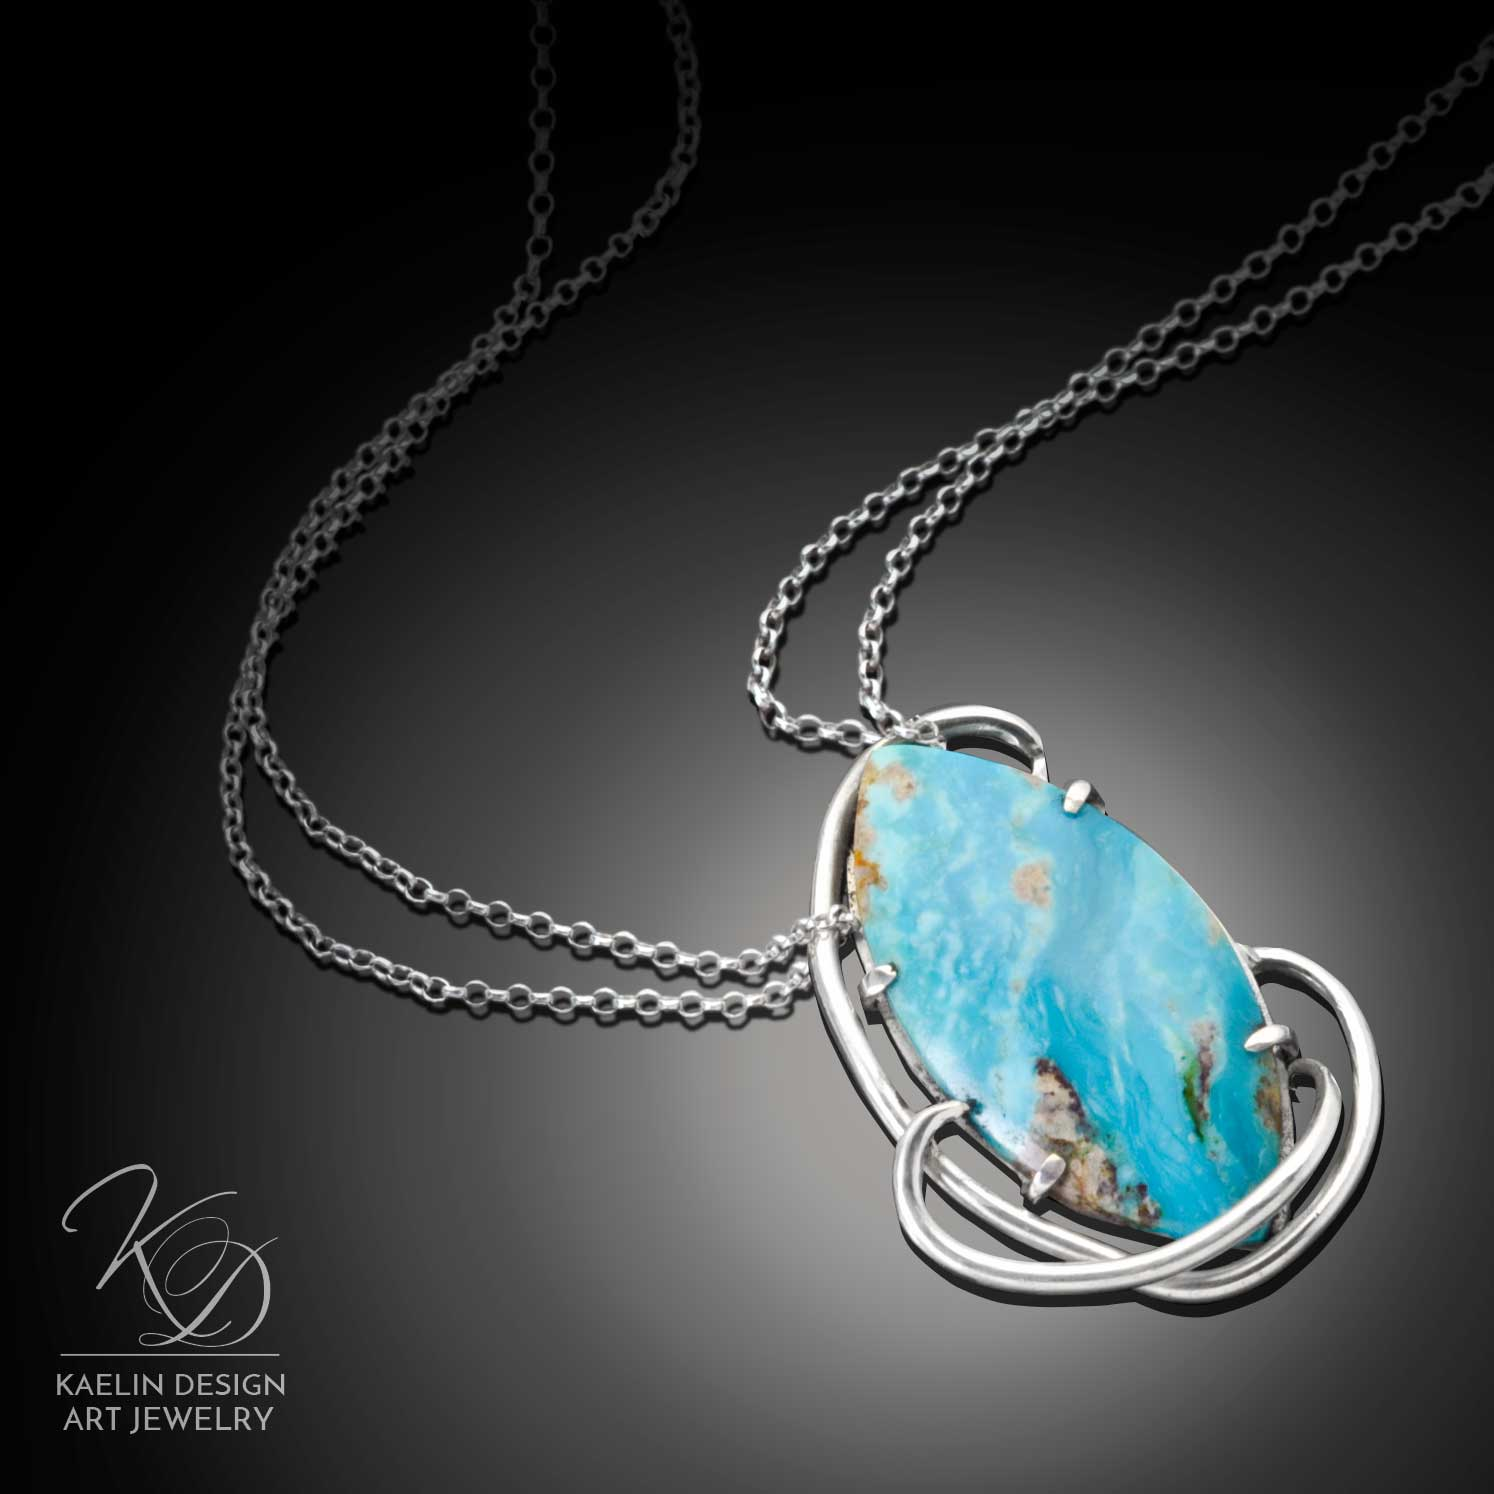 Sea Swept Turquoise Art Jewelry Pendant by Kaelin Design